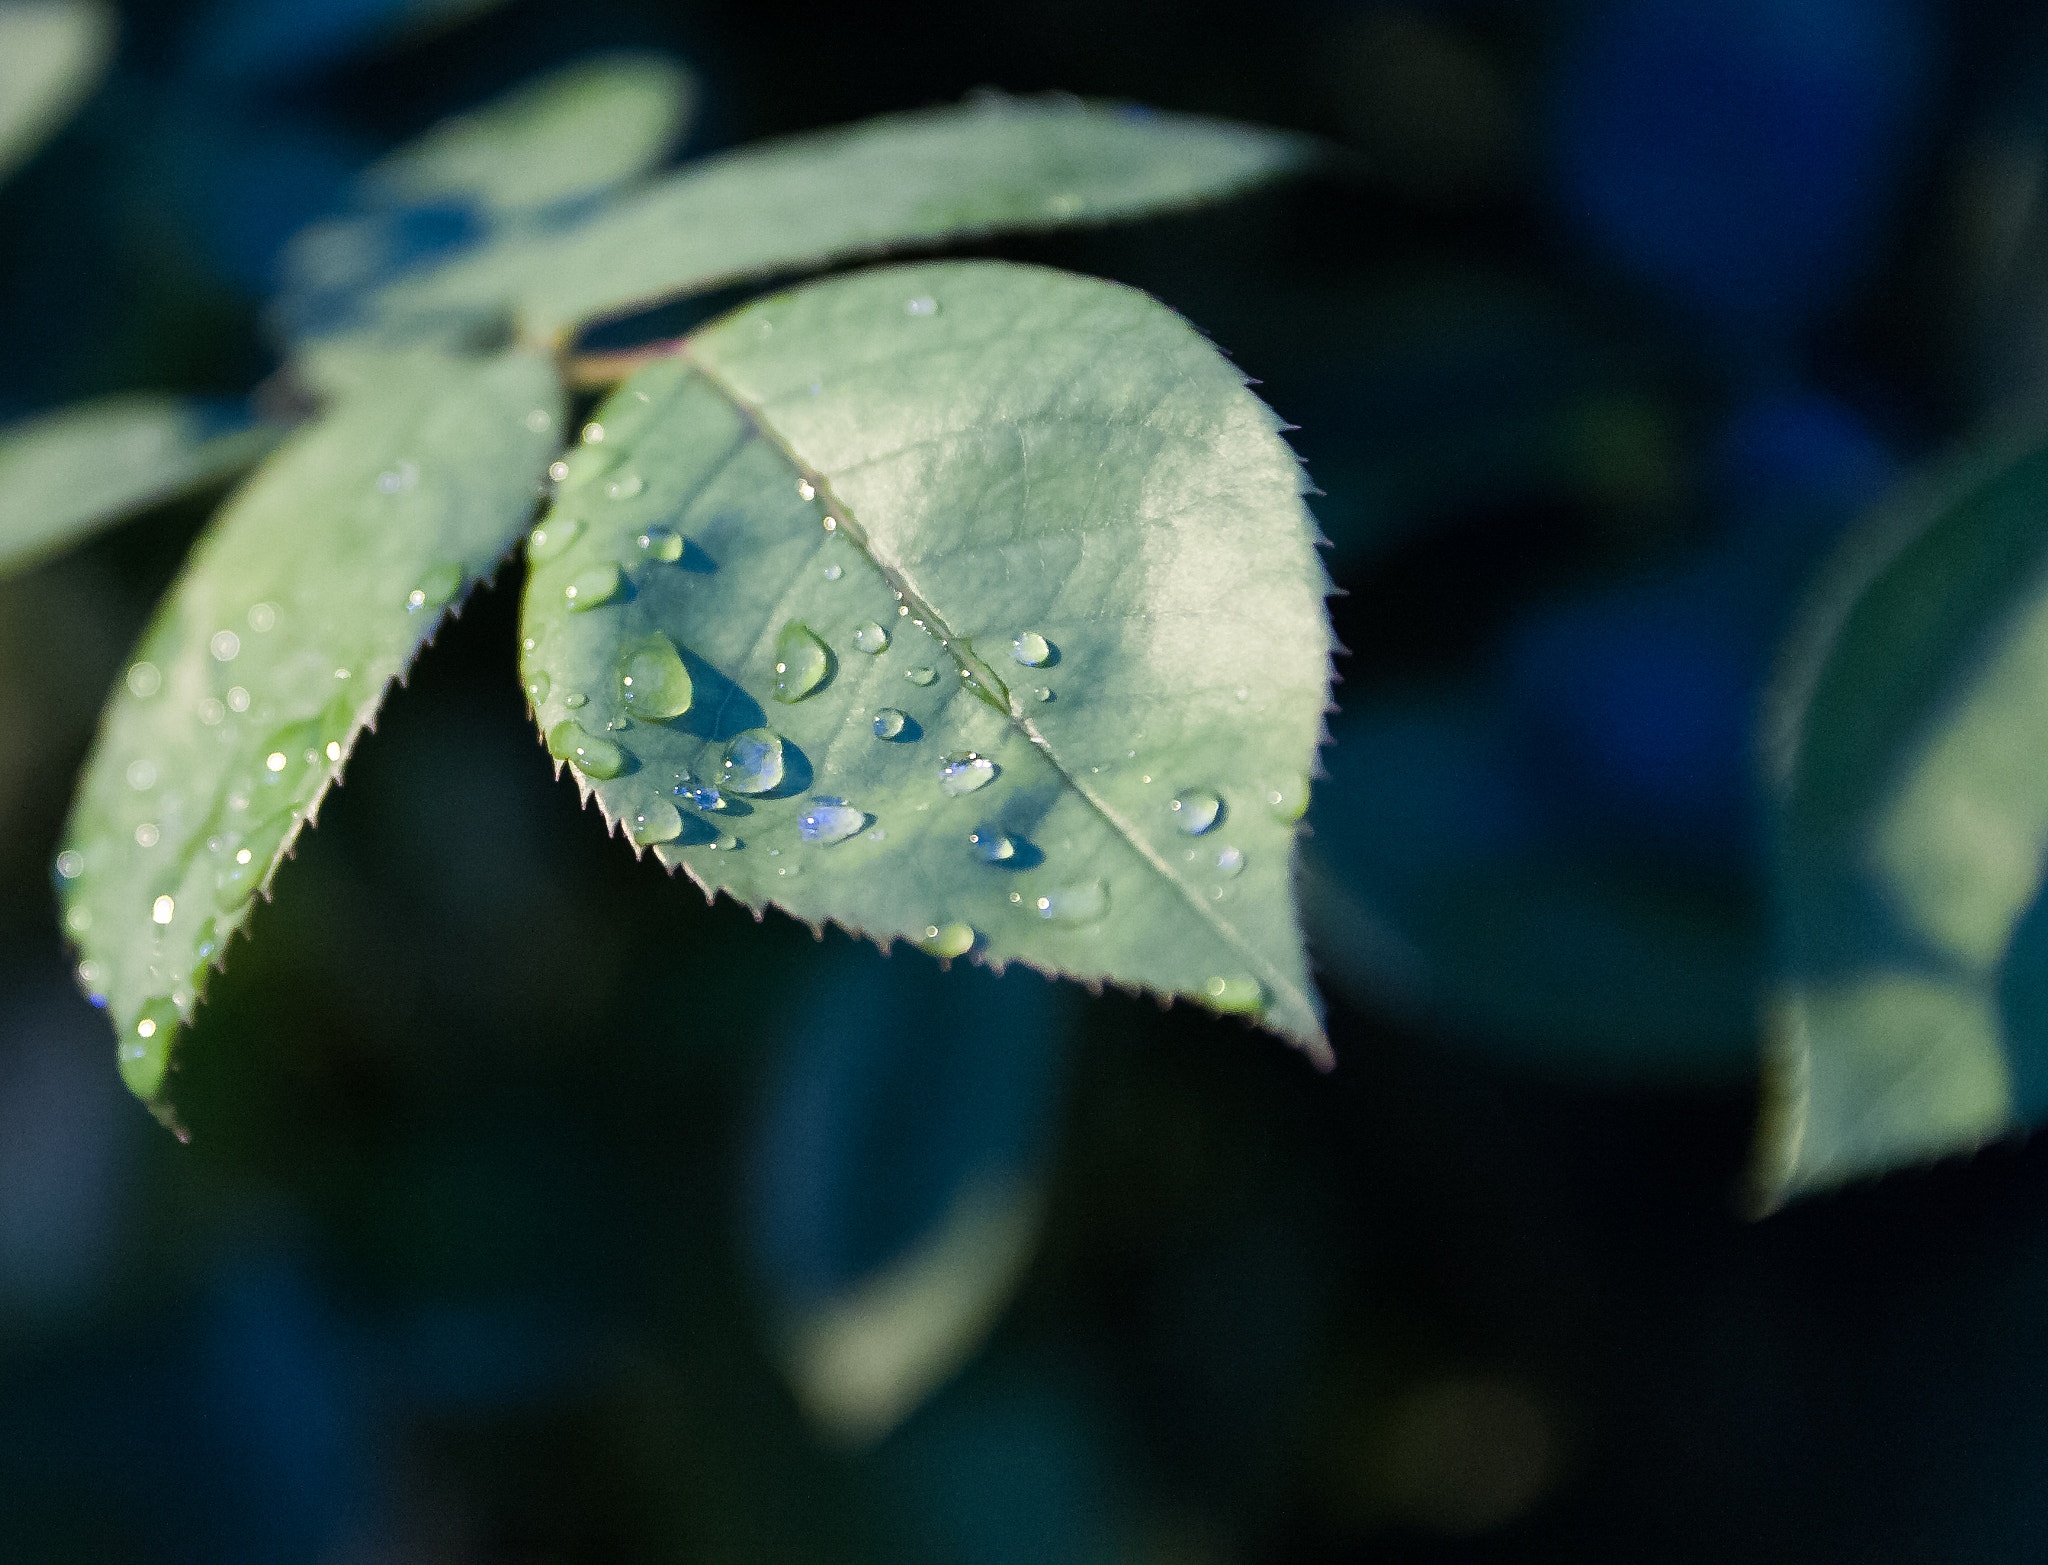 Photograph After the Rain by Ash Furrow on 500px